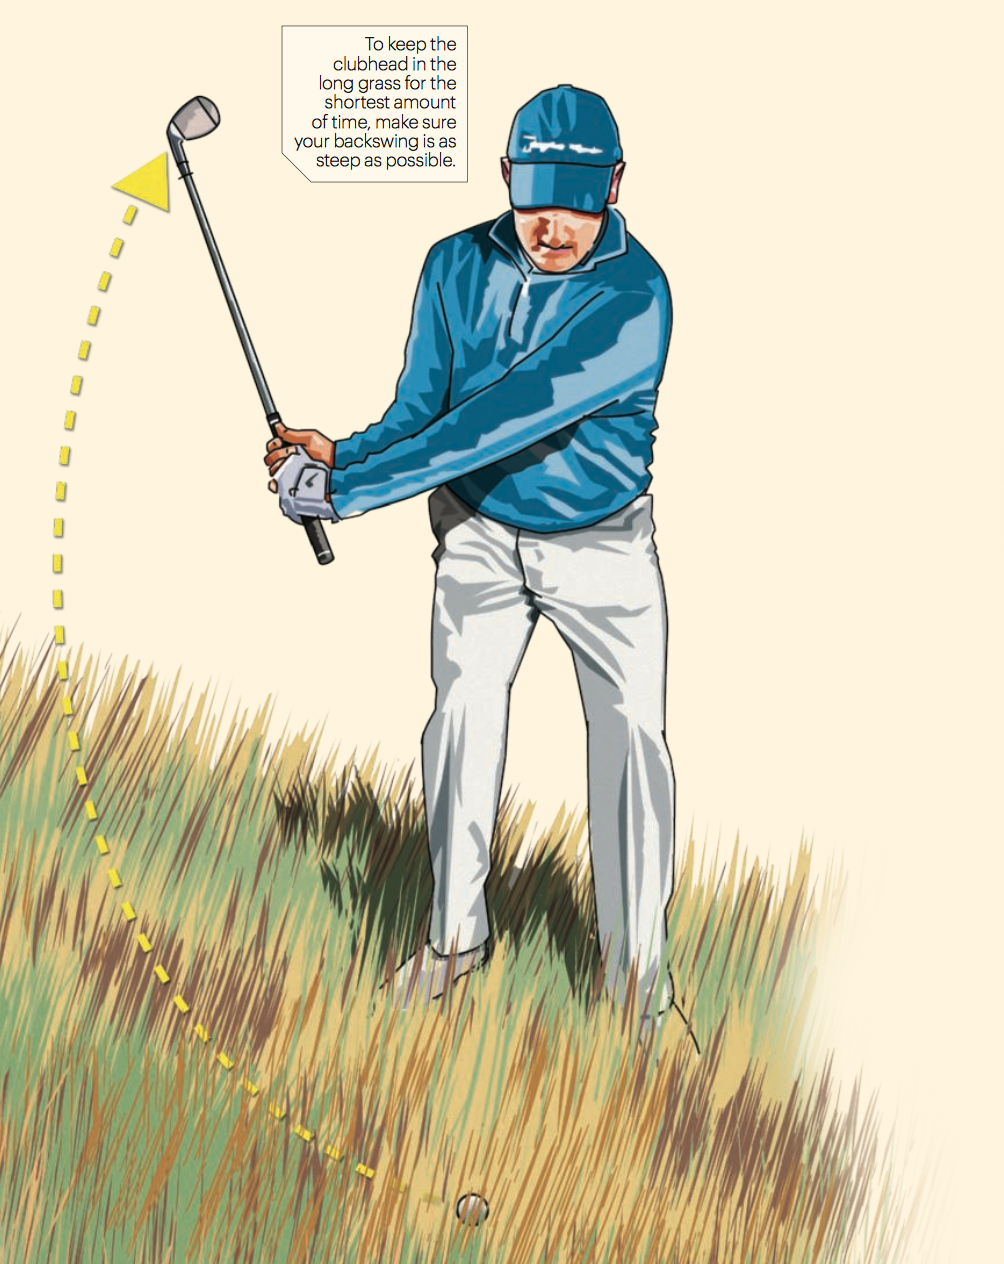 To keep the clubhead in the long grass for the shortest amount of time, make sure your backswing is as steep as possible.